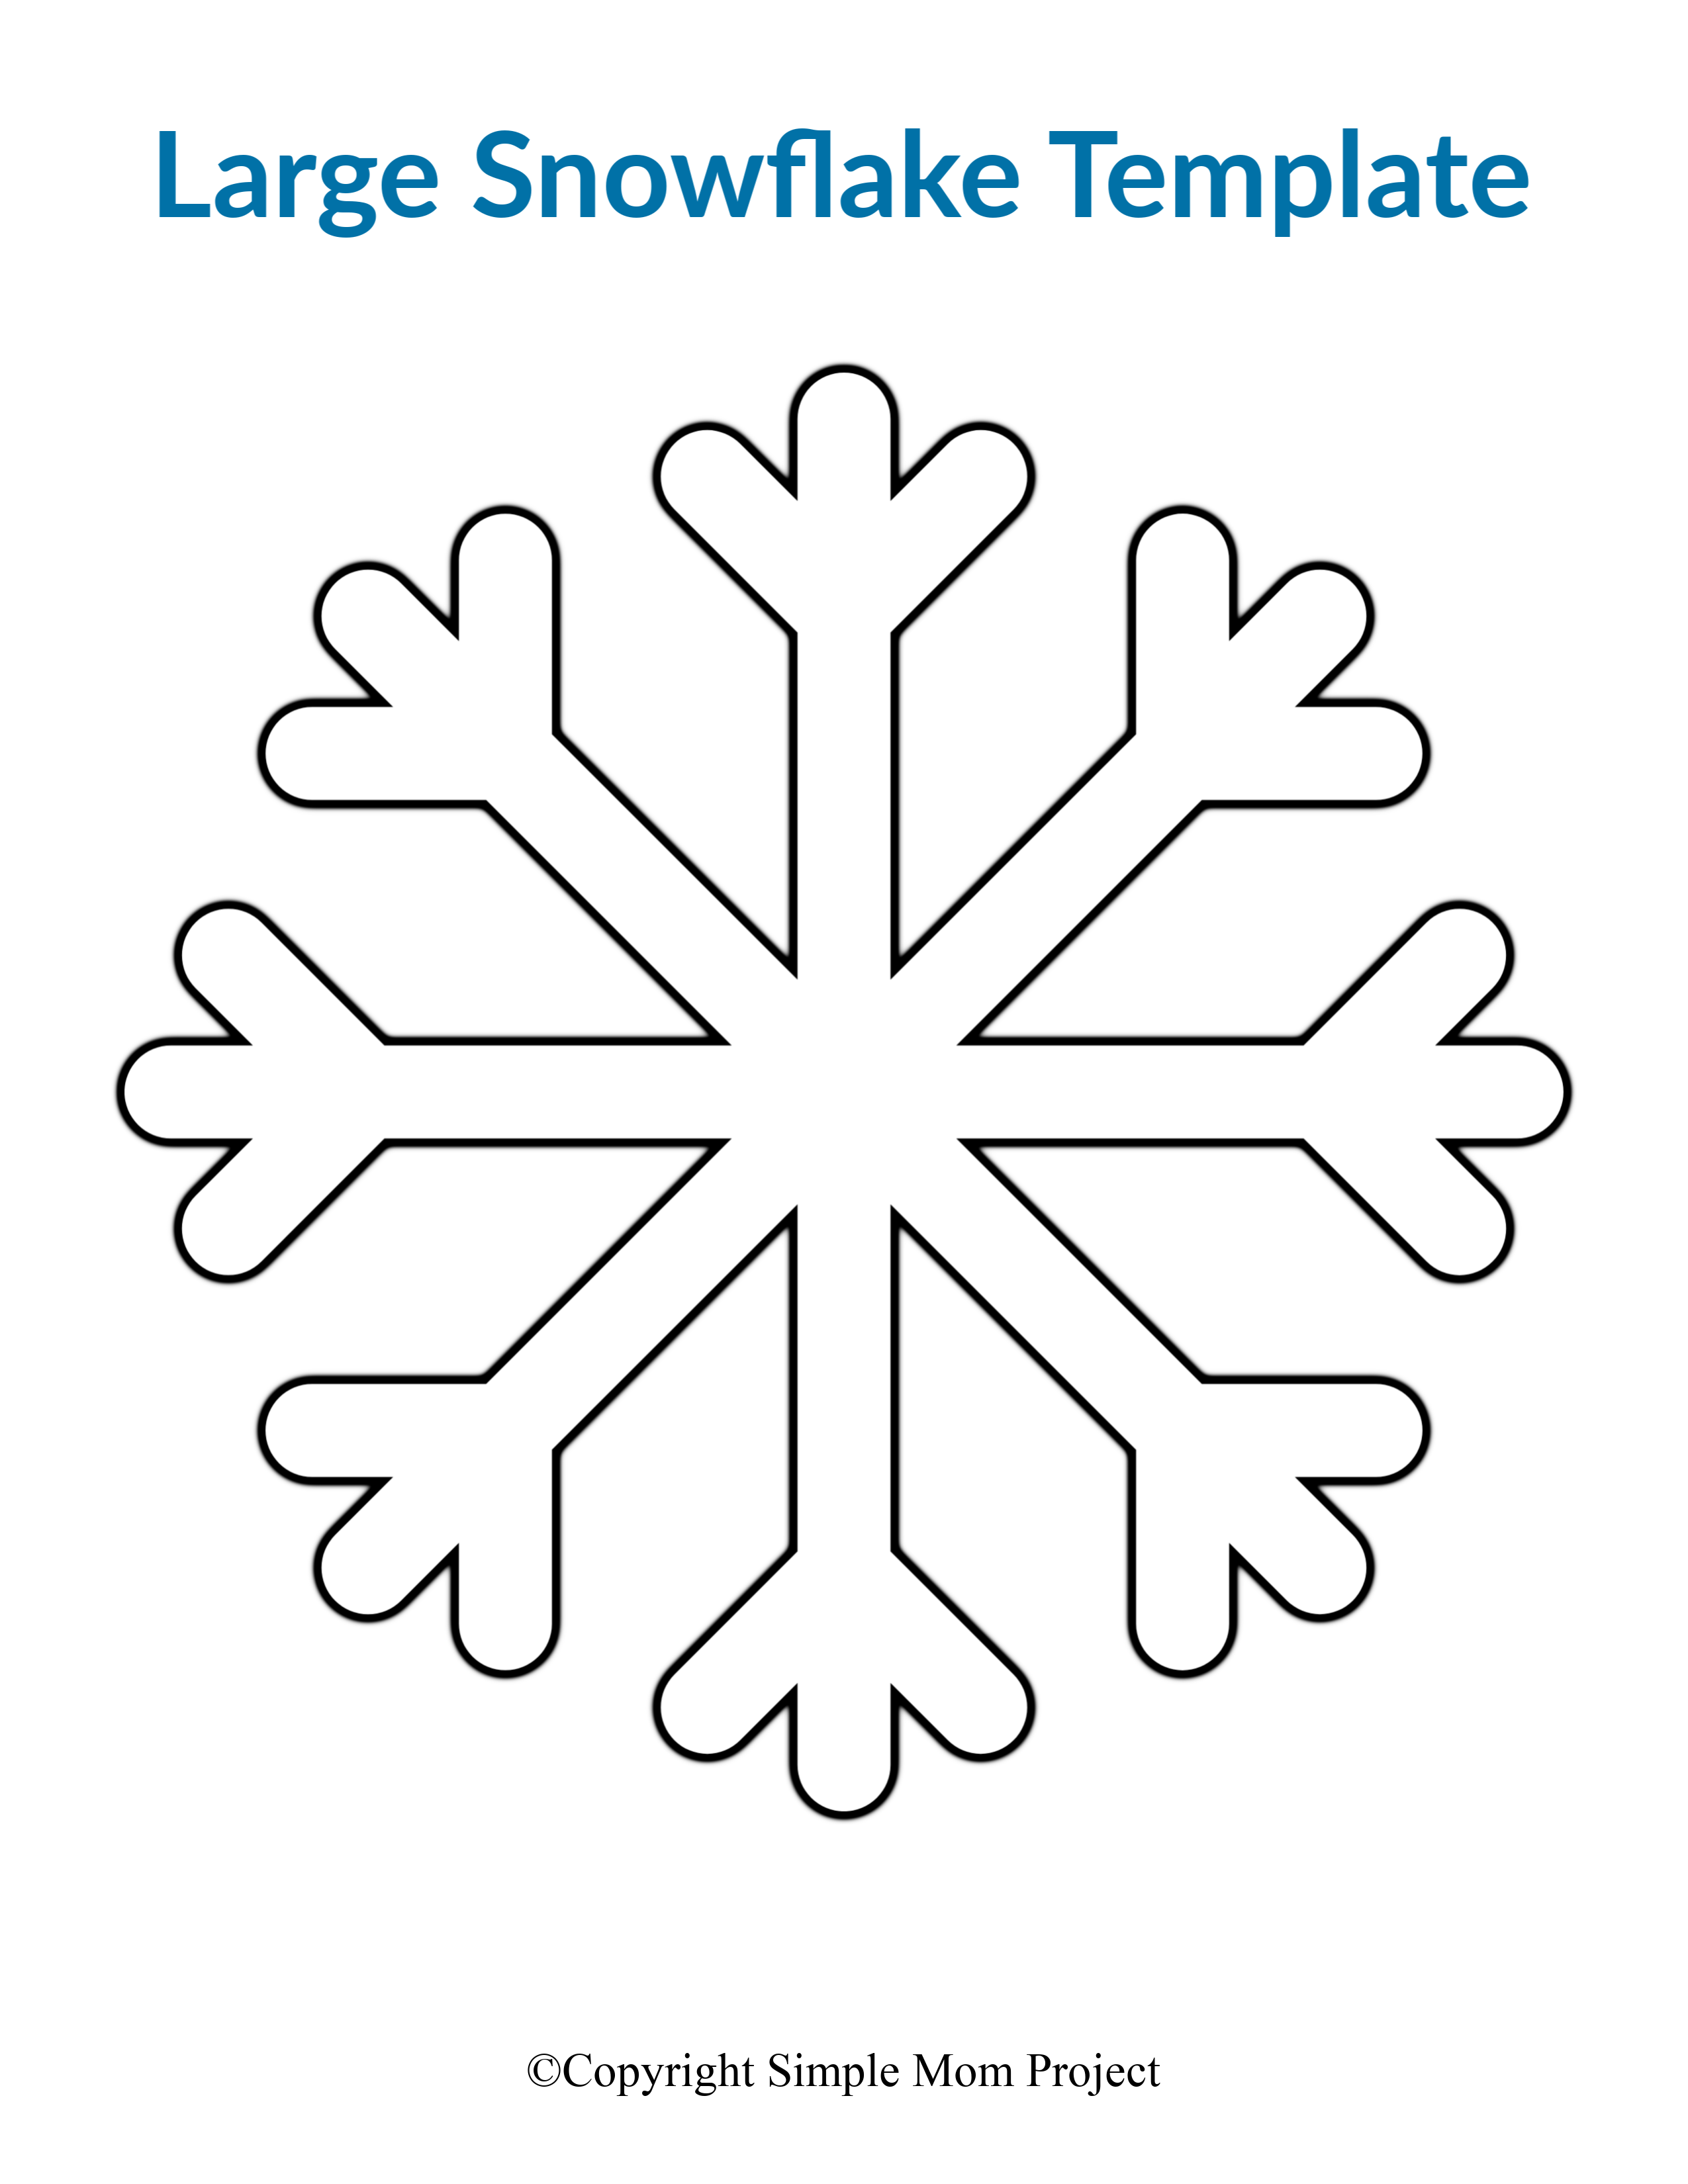 Printable Large Snowflake Template Paper Cut Out Stencil